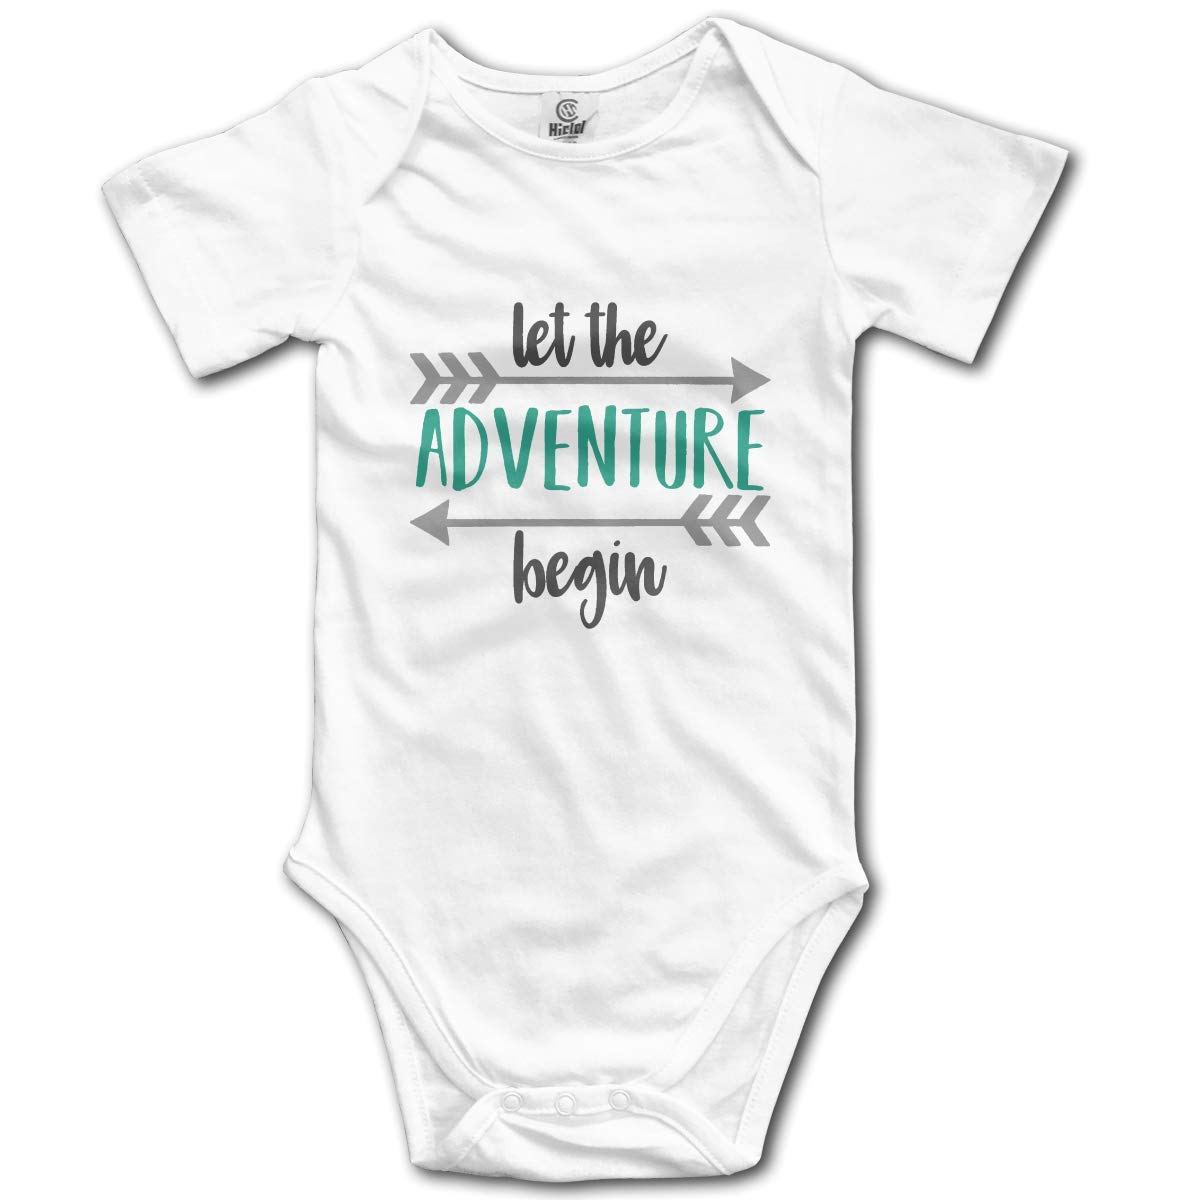 gregezrg New Let New Adventure Begin Cotton Infant Bodysuit Playsuit Union Suit Baby Short-Sleeve Bodysuit